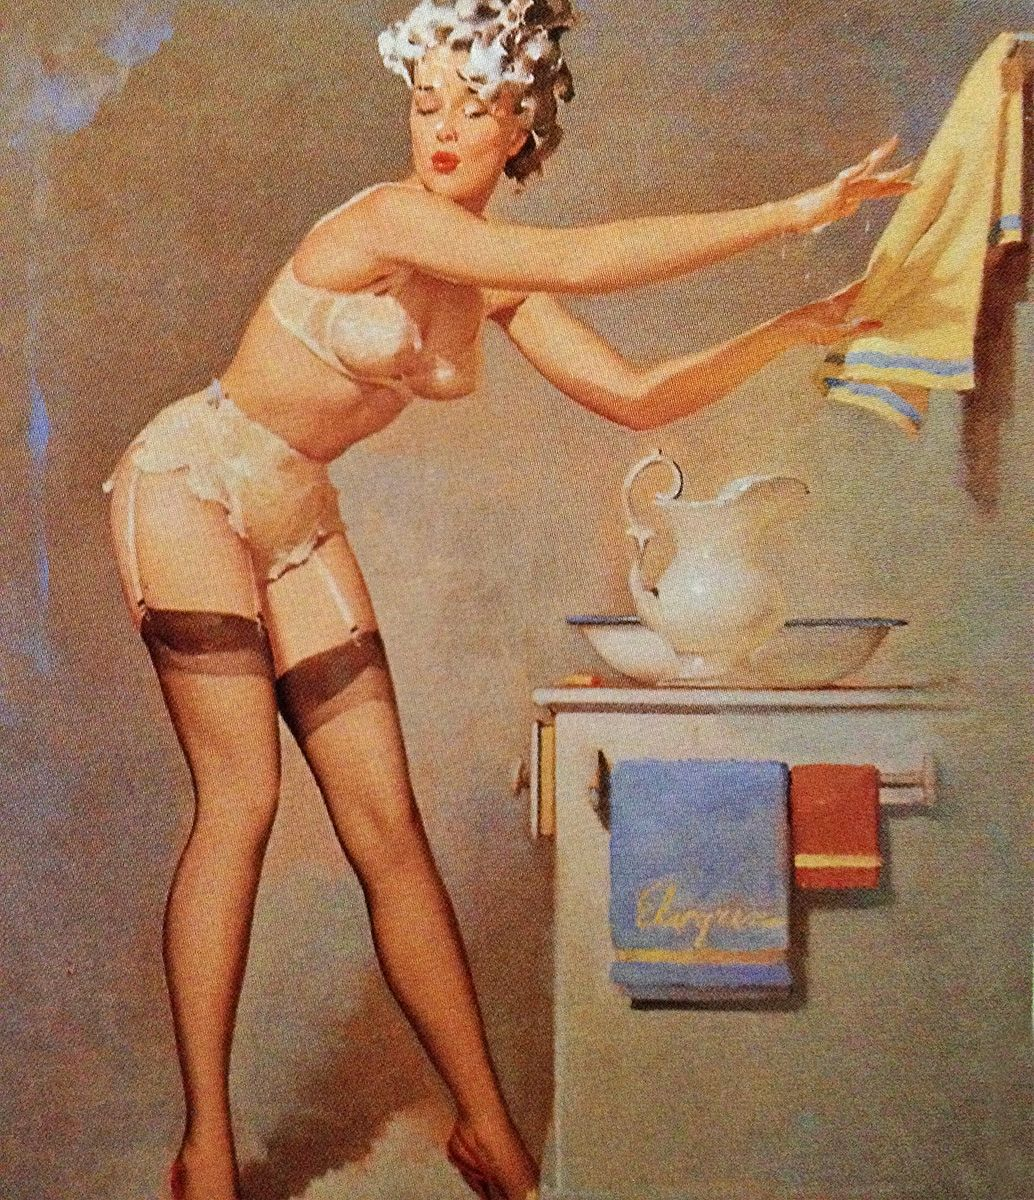 2019 Vintage Pinup Girl Gil Elvgren Hand Painted Art Oil: 1940's Pinup Girl Reaching For Towel - On Canvas